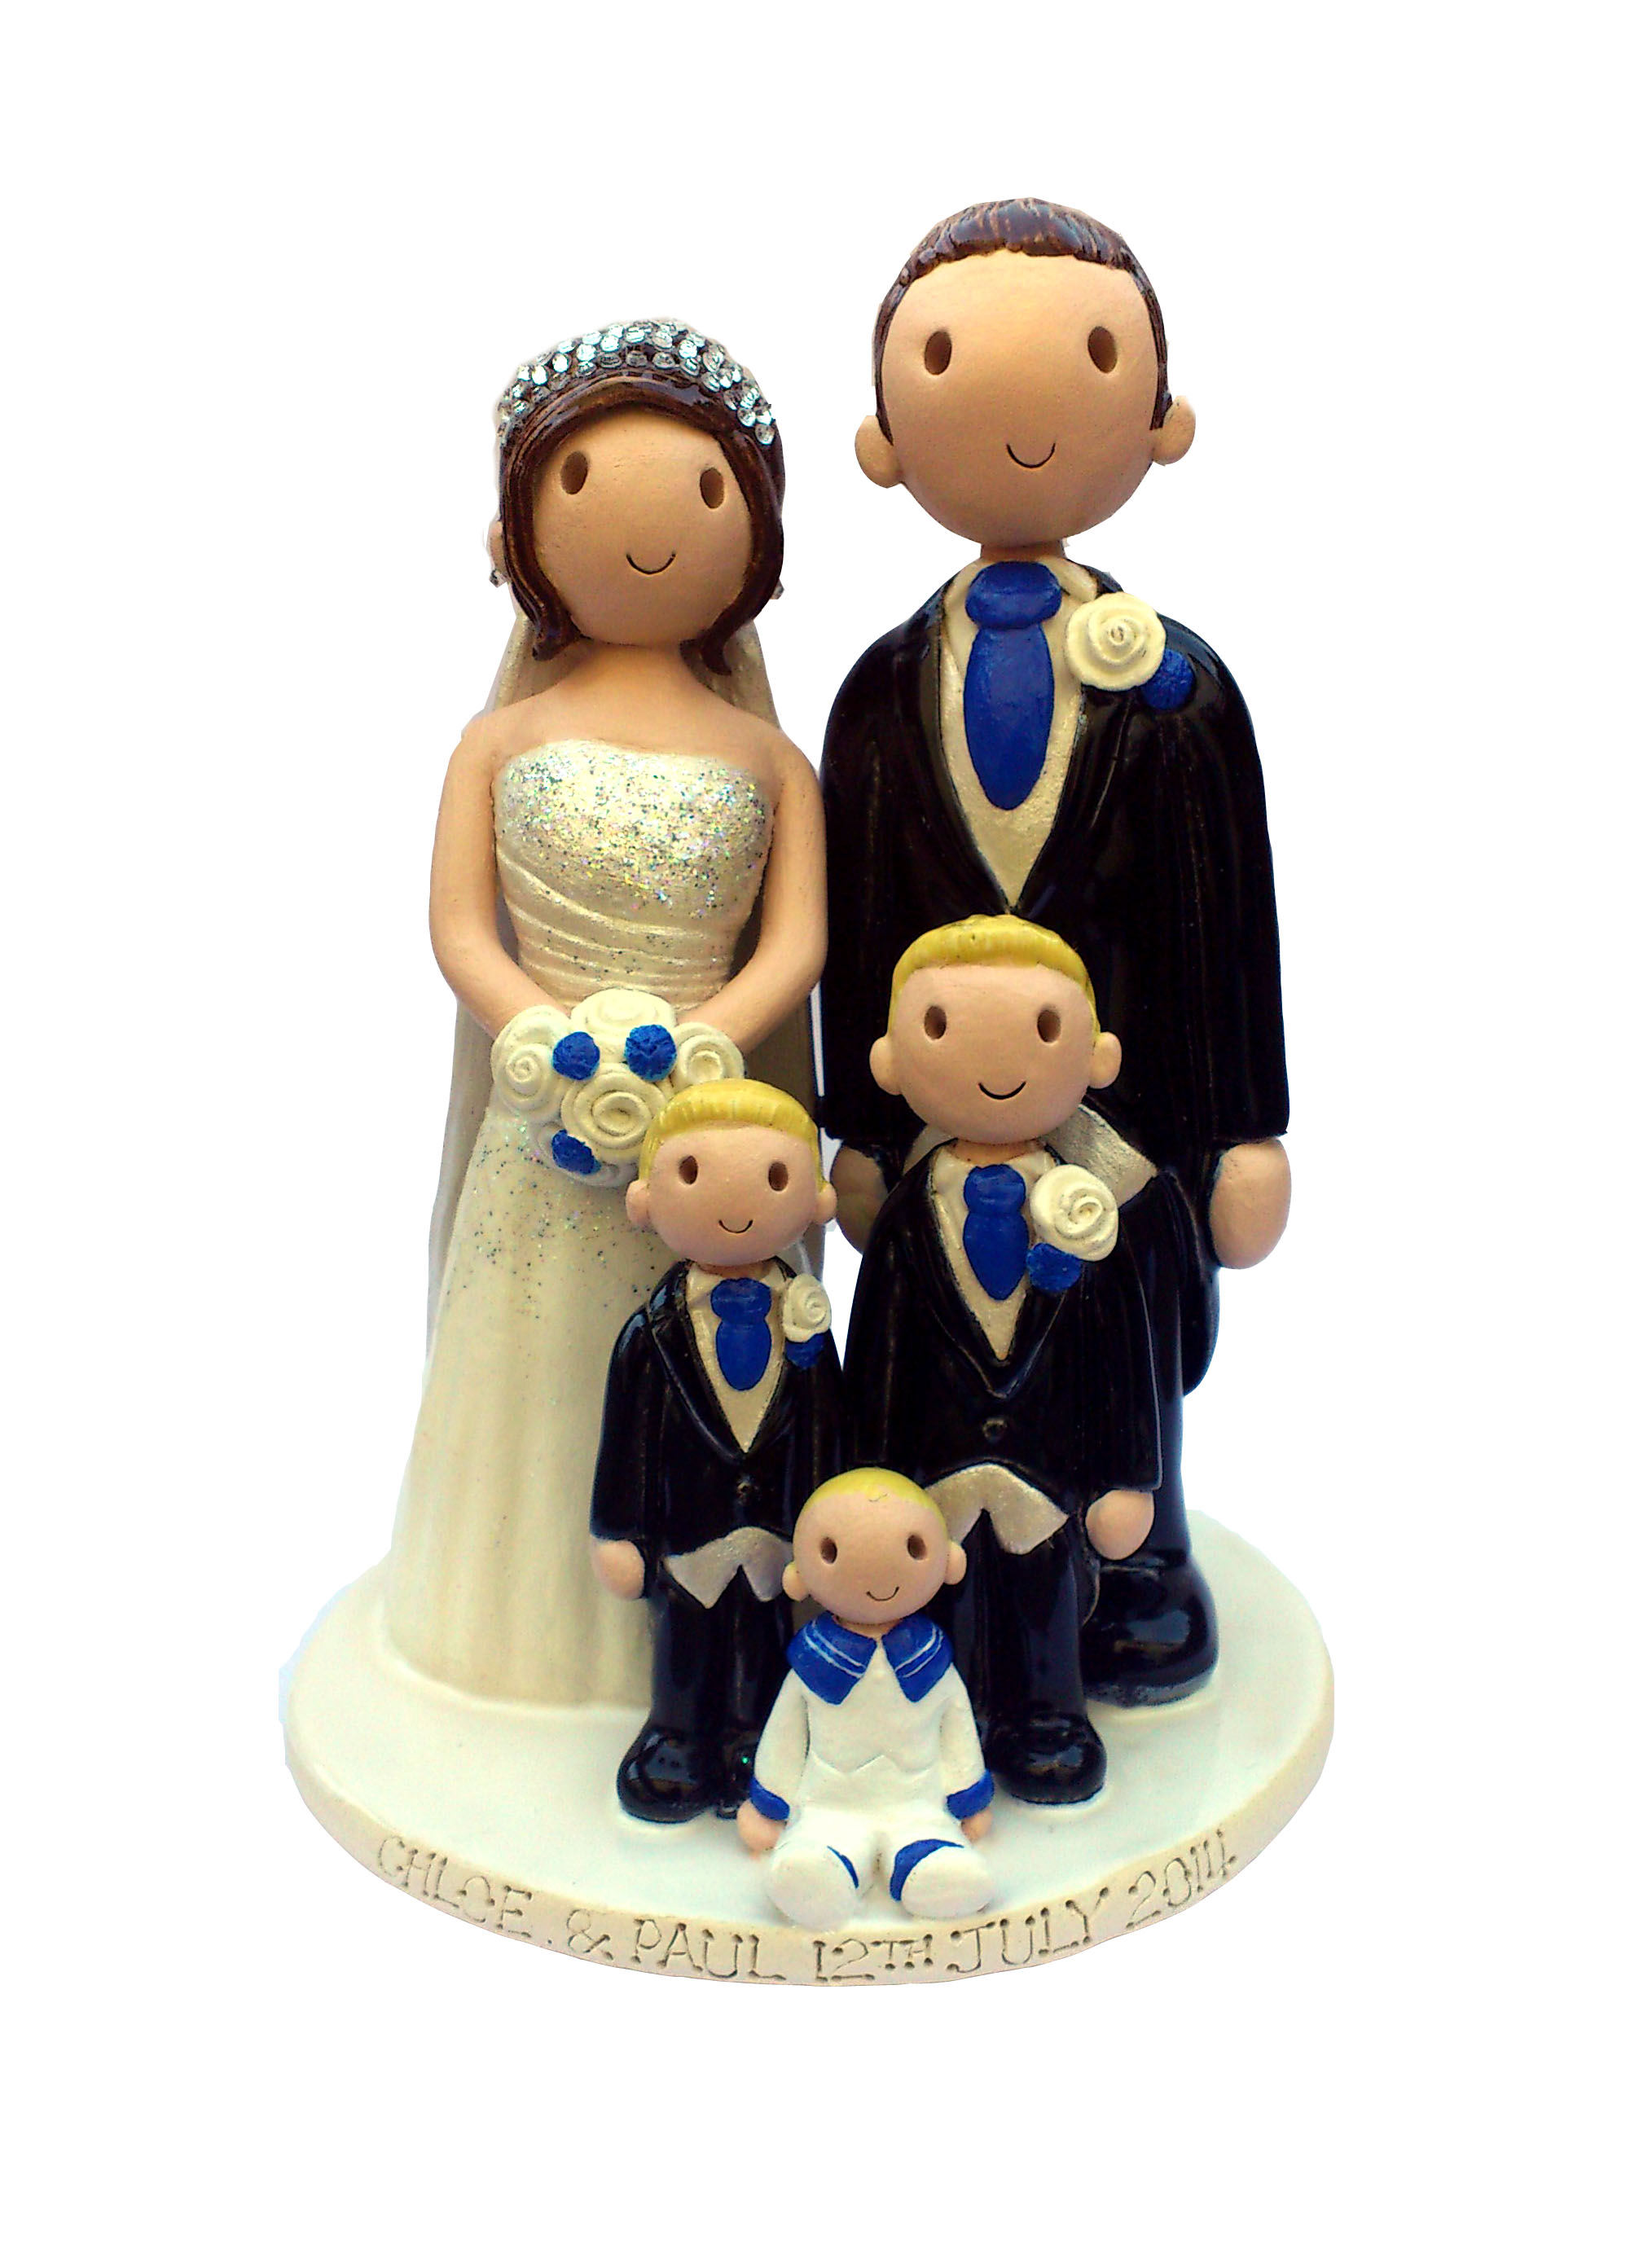 personalised wedding cake toppers uk only wedding cake toppers gallery examples of toppers we 18257